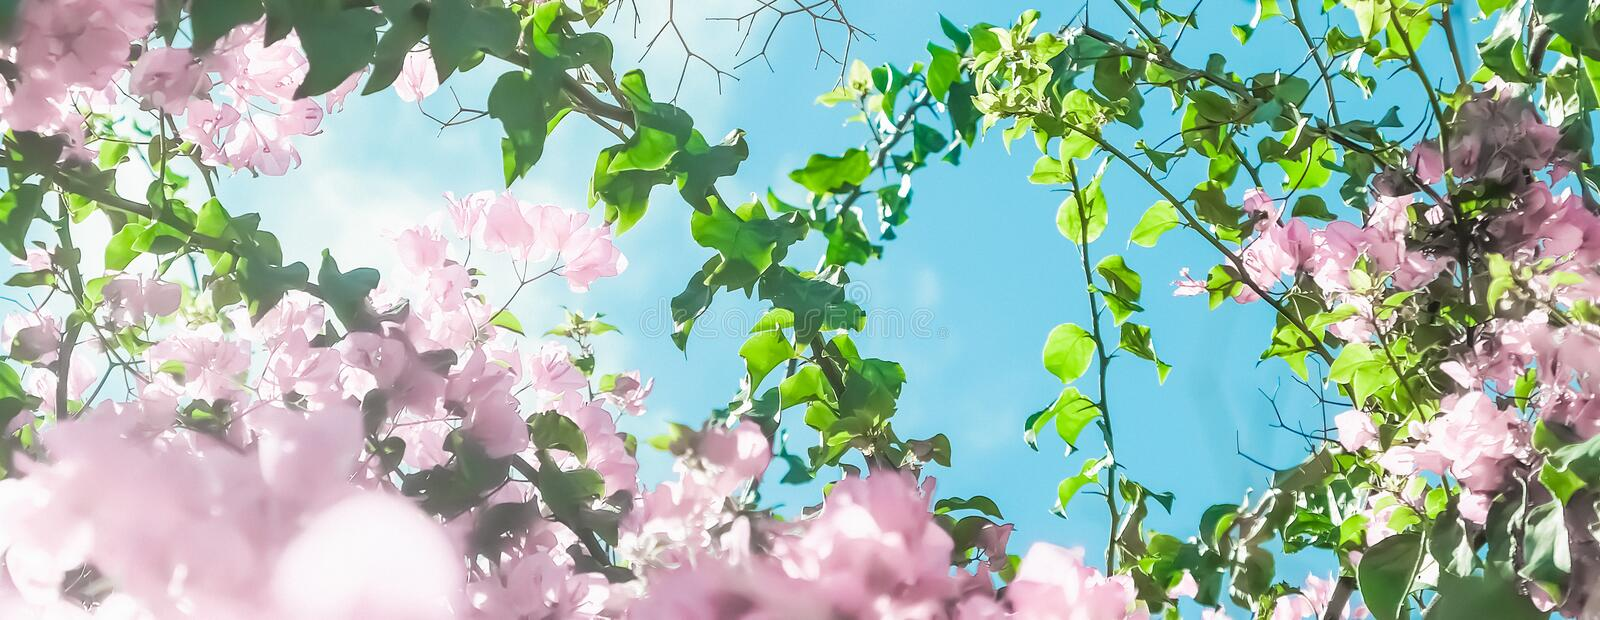 Pastel pink blooming flowers and blue sky in a dream garden, floral background stock images